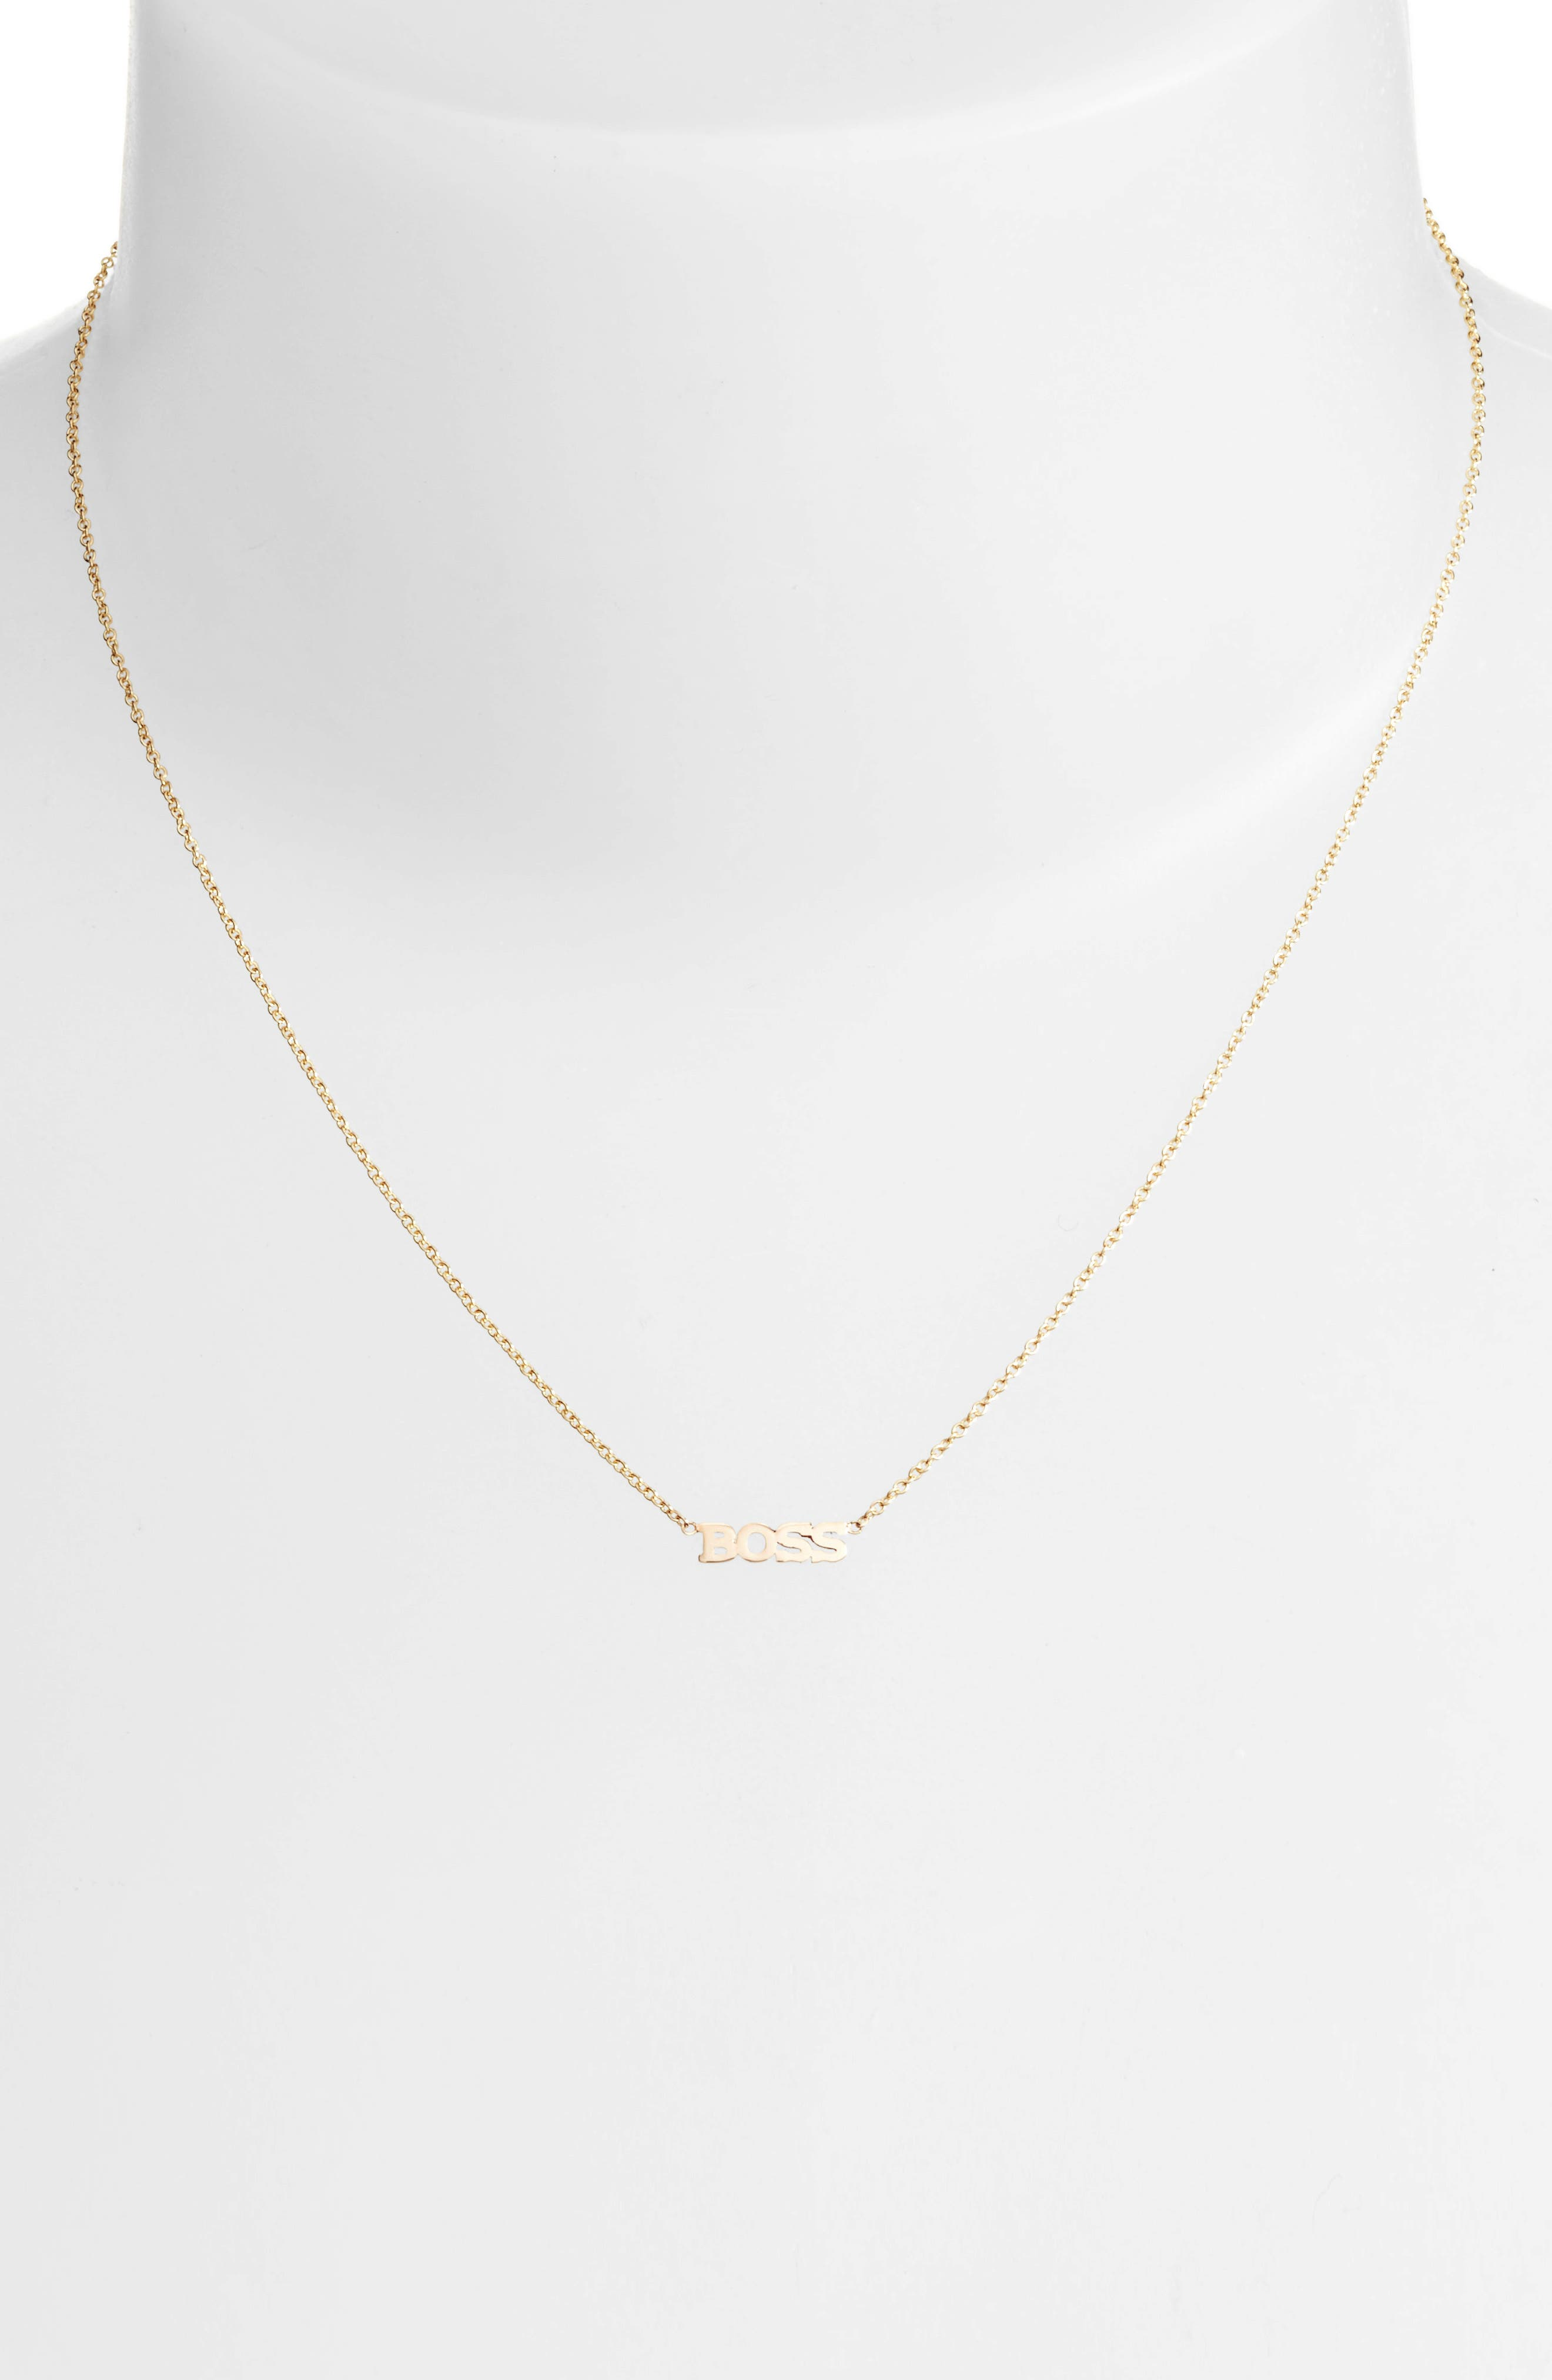 Itty Bitty Typographical Pendant Necklace,                             Alternate thumbnail 2, color,                             YELLOW GOLD/ GOLD